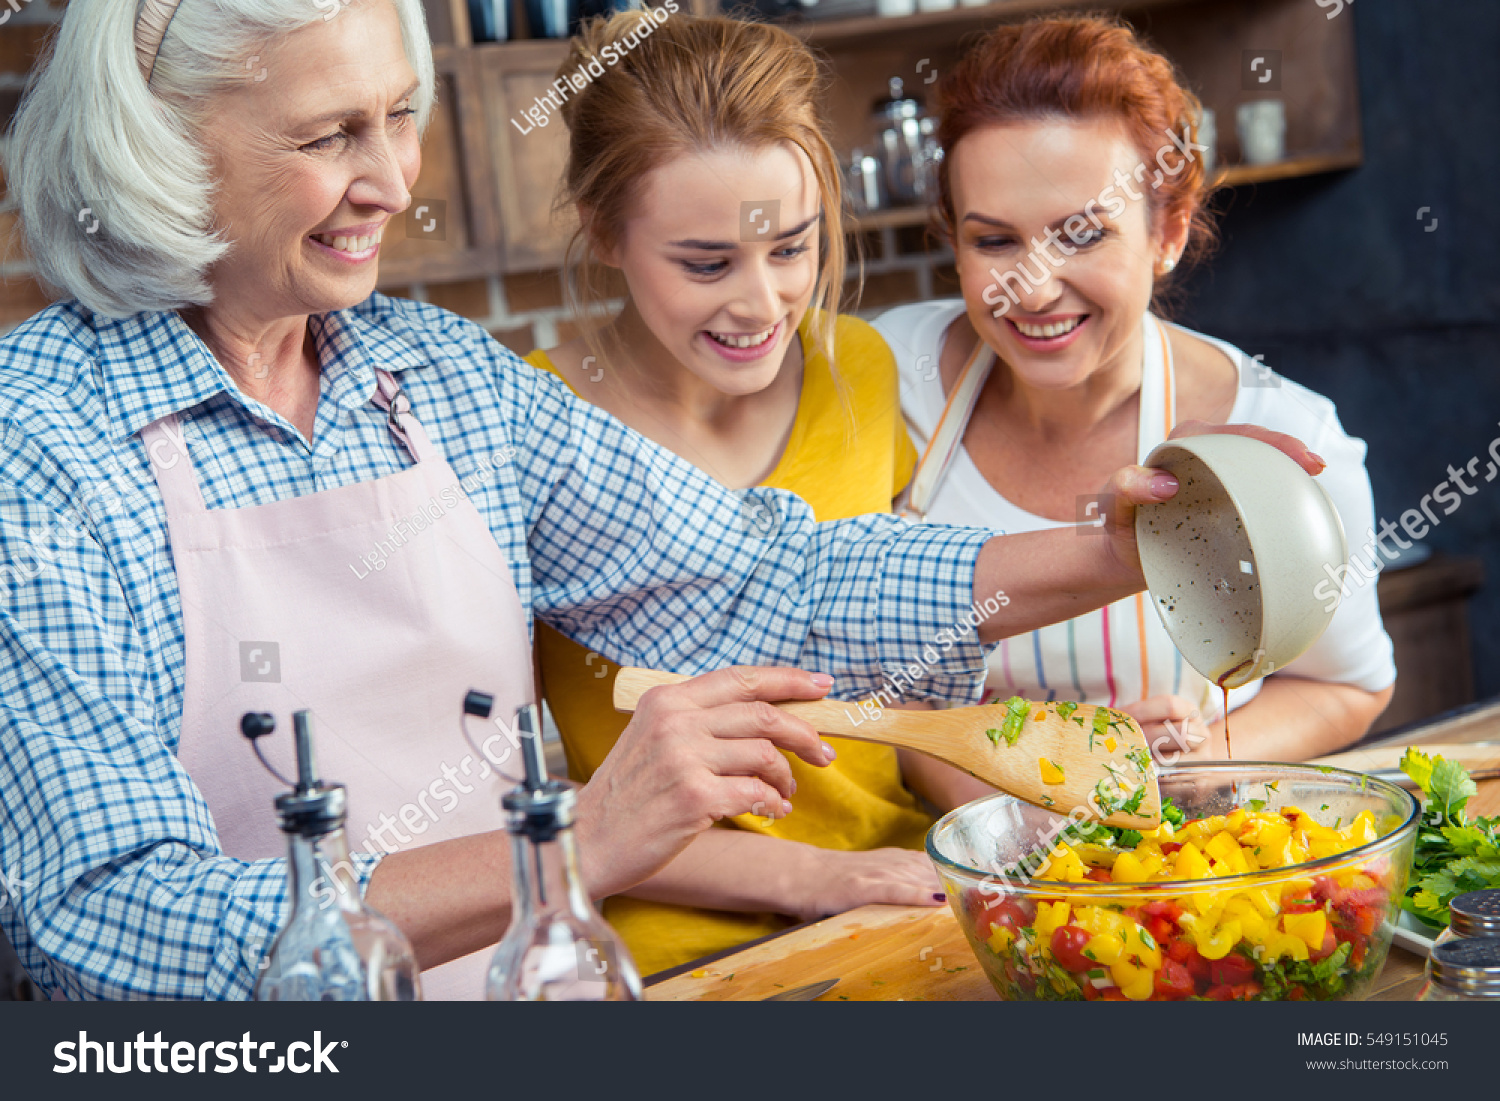 Family cooking kitchen - Happy Three Generation Family Cooking Vegetable Salad Together In Kitchen